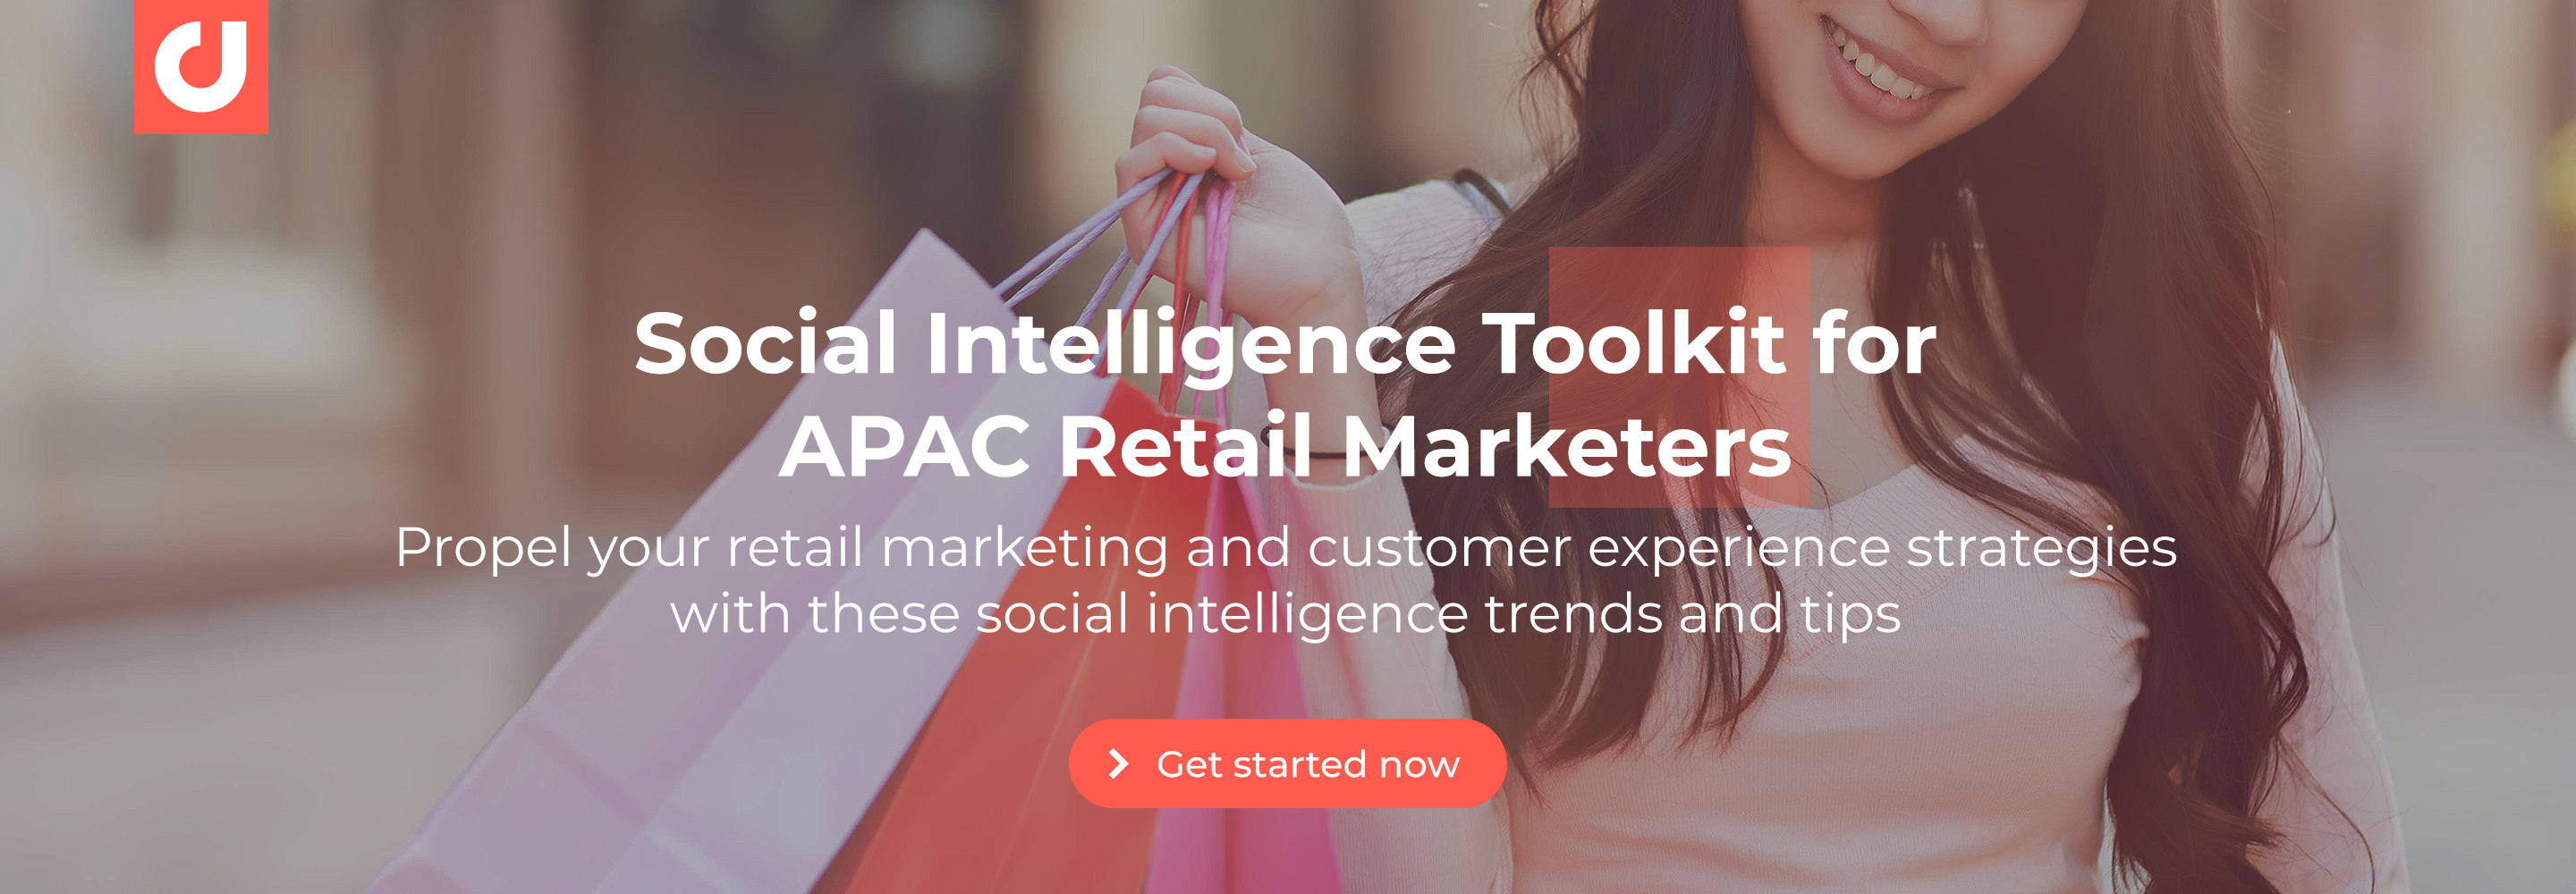 APAC - Retail Marketing Guide_LP Banner + CTA.jpg